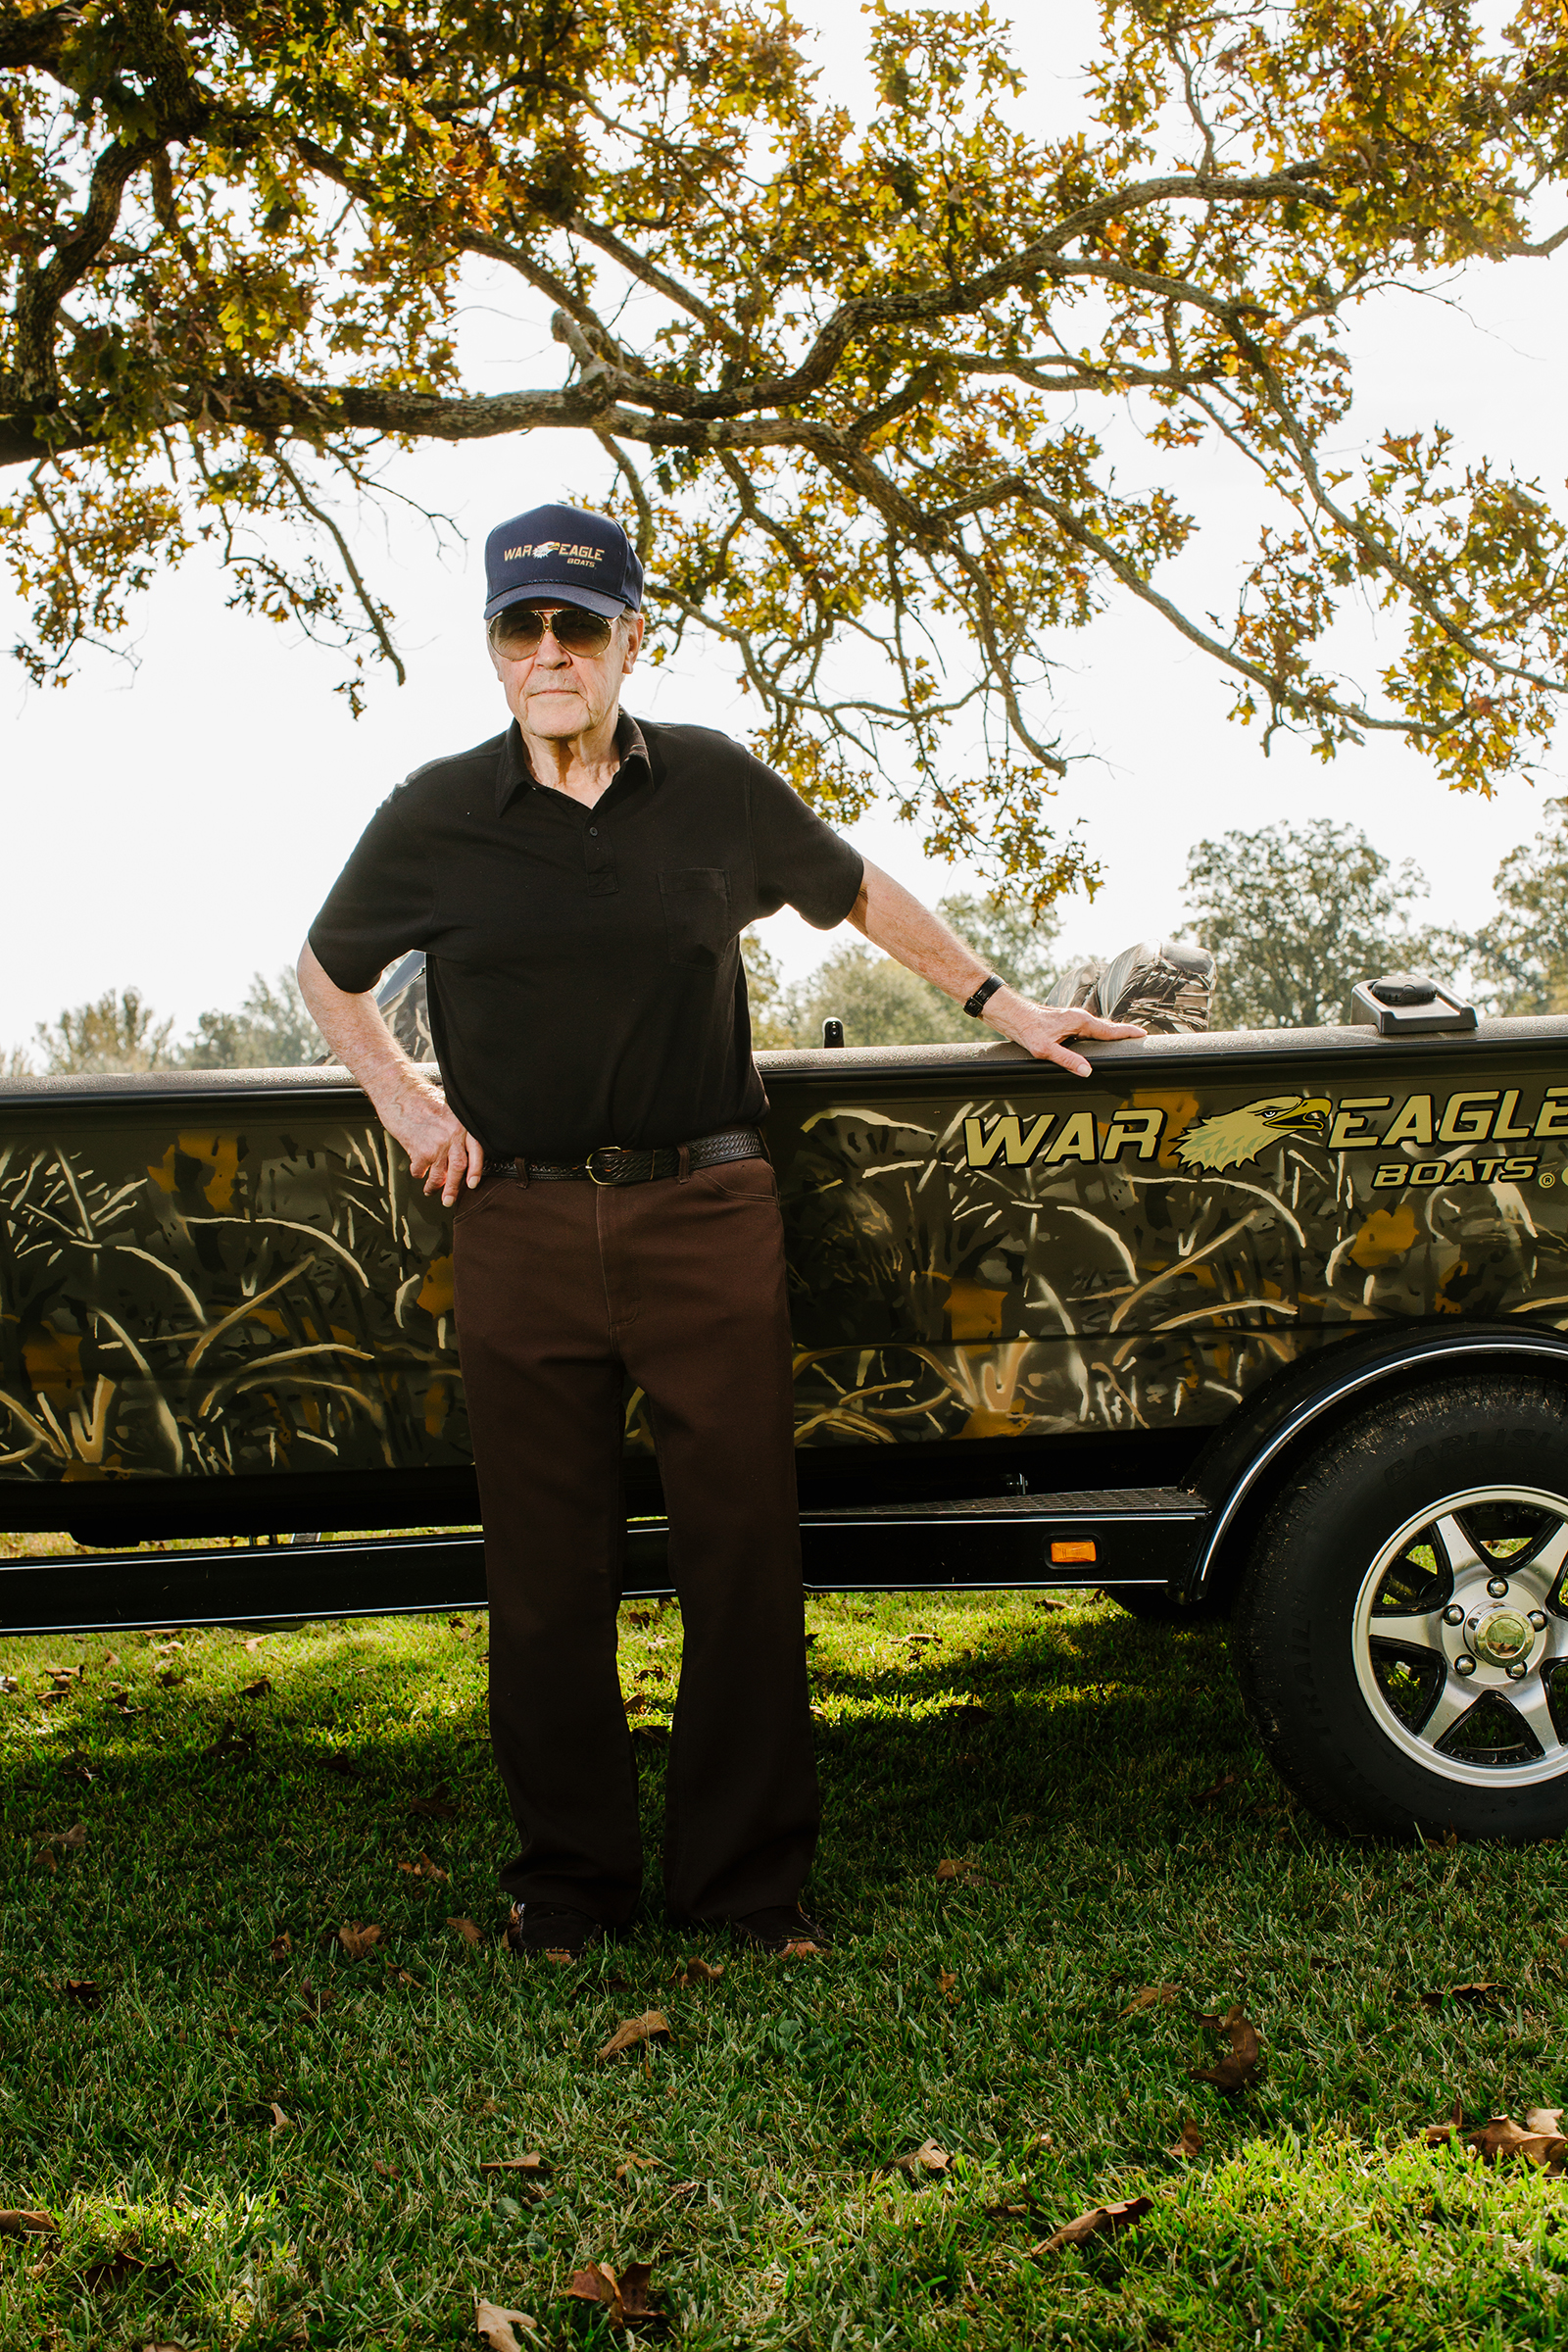 Kim Ward poses with one of the War Eagle boats that bear the mark of his innovations in the aluminum boat industry.